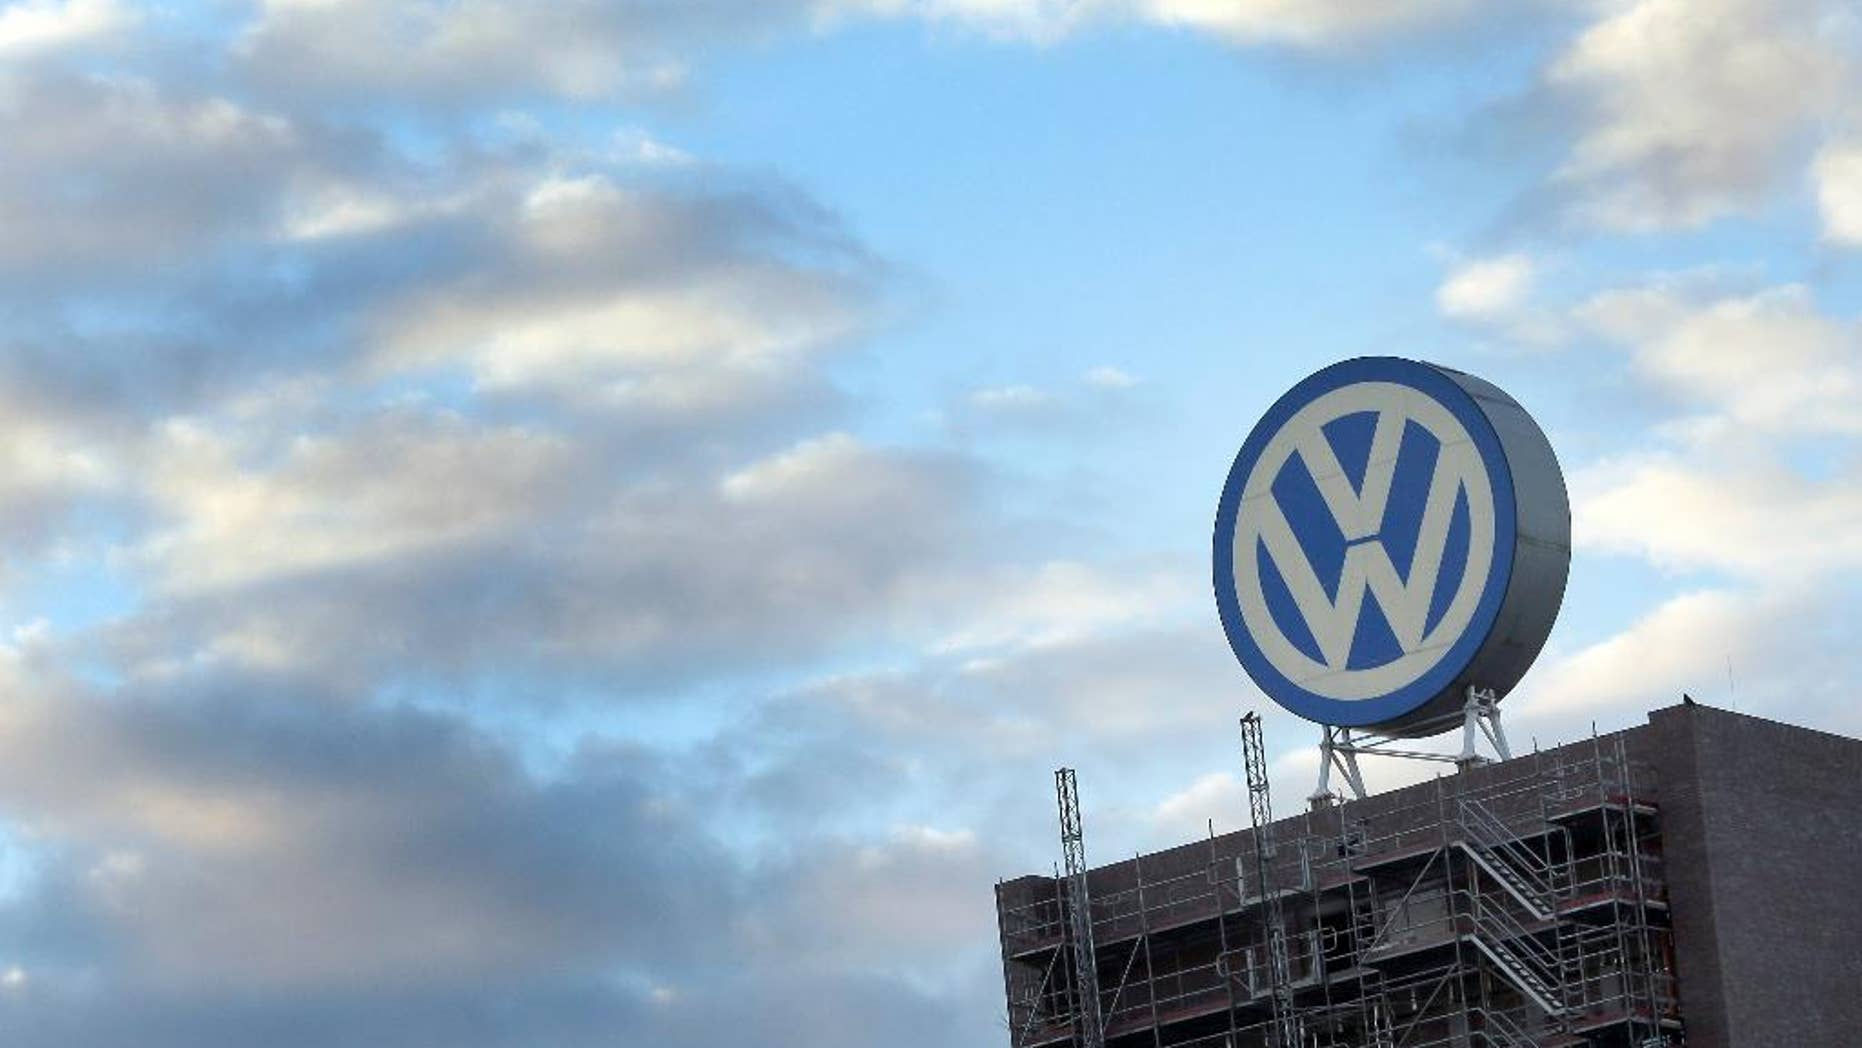 FILE - In this Sept. 26, 2015 file photo a giant logo of the German car manufacturer Volkswagen is pictured on top of a company's factory building in Wolfsburg, Germany. A German court says Wednesday, Sept. 21, 2016 it has added staff and storage space to handle a flood of 1,400 investor lawsuits against Volkswagen seeking damages worth 8.2 billion euros (US dollar 9.2 billion). (AP Photo/Michael Sohn, file)